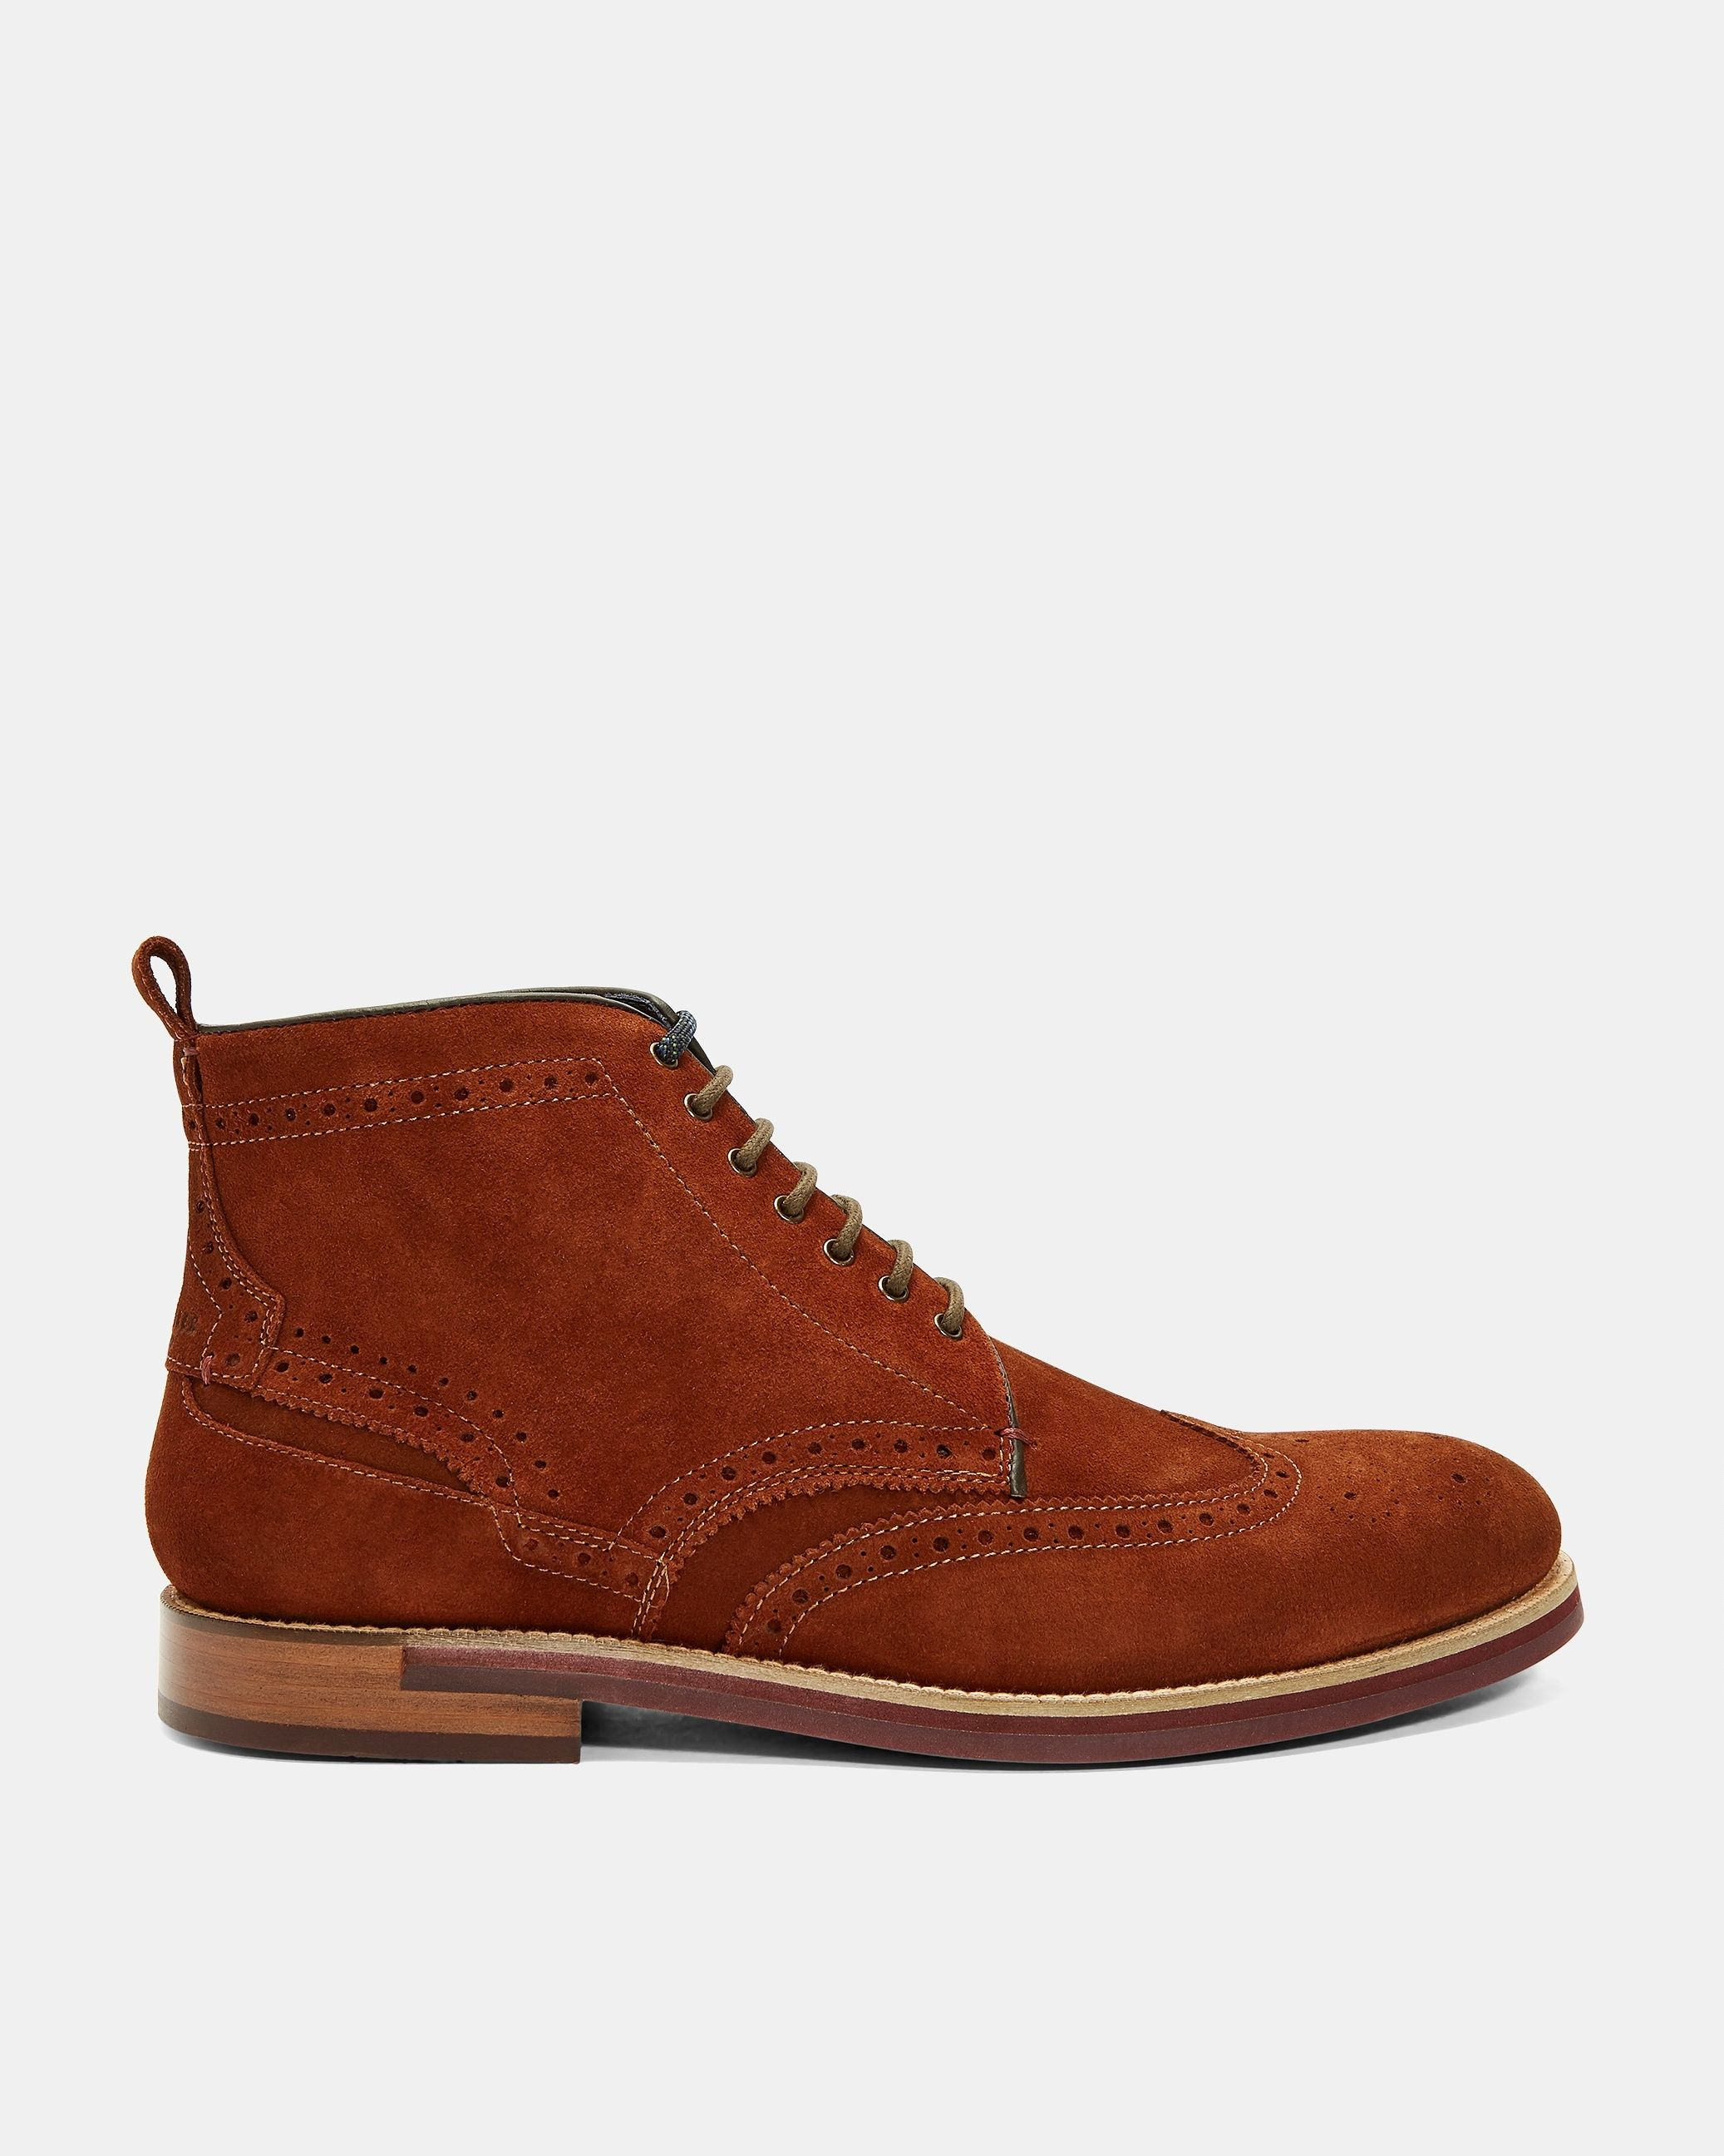 Ted Baker Shennjo Brogue Suede Ankle Boots, Tan